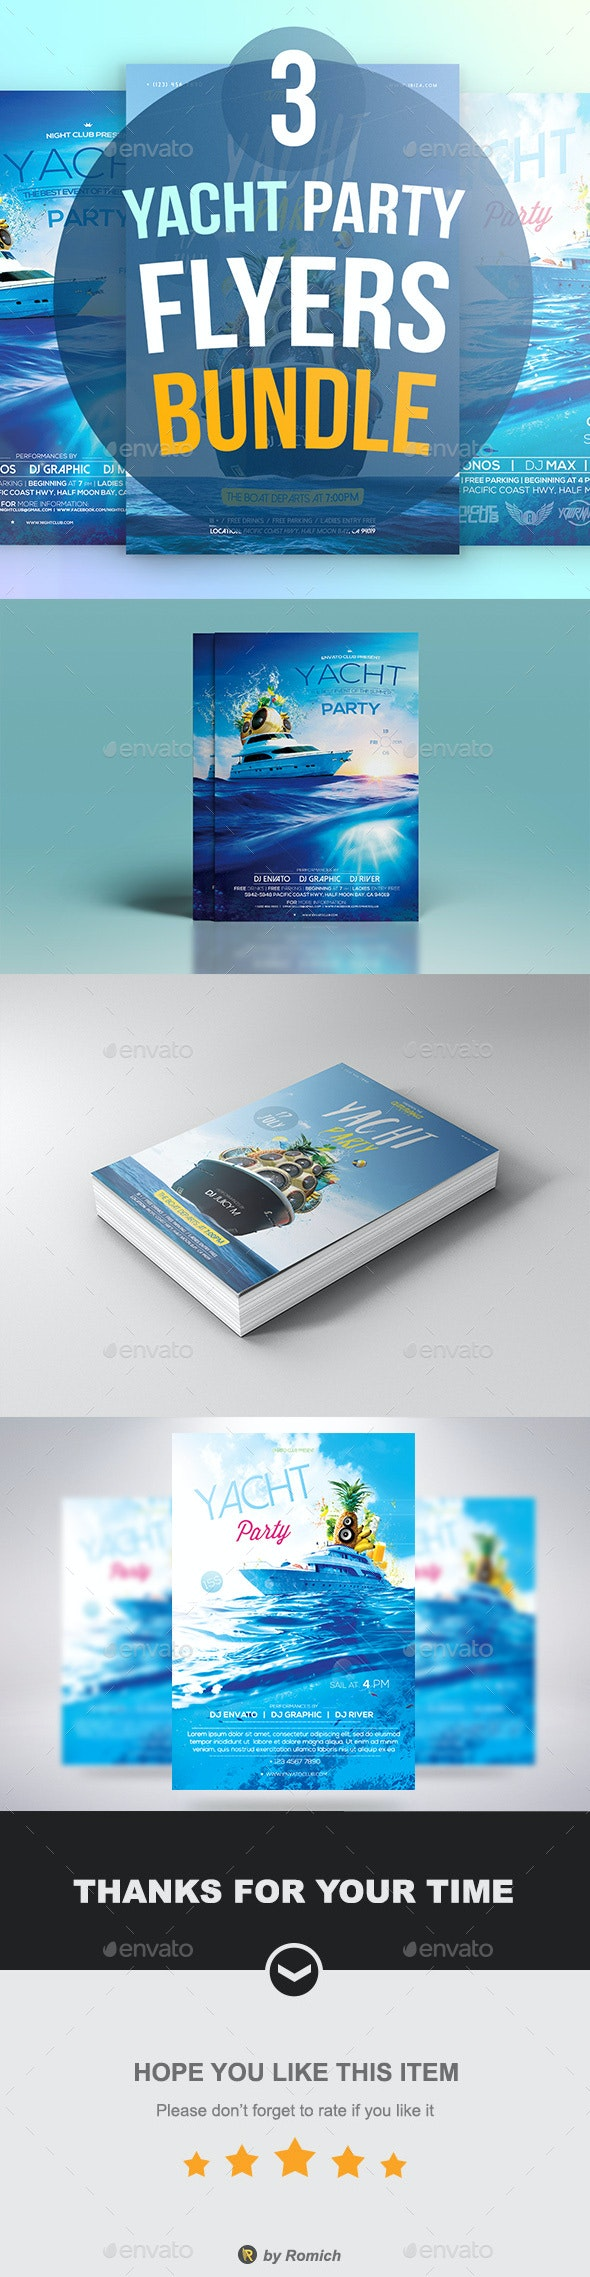 3 Yacht Party Flyers Bundle - Clubs & Parties Events